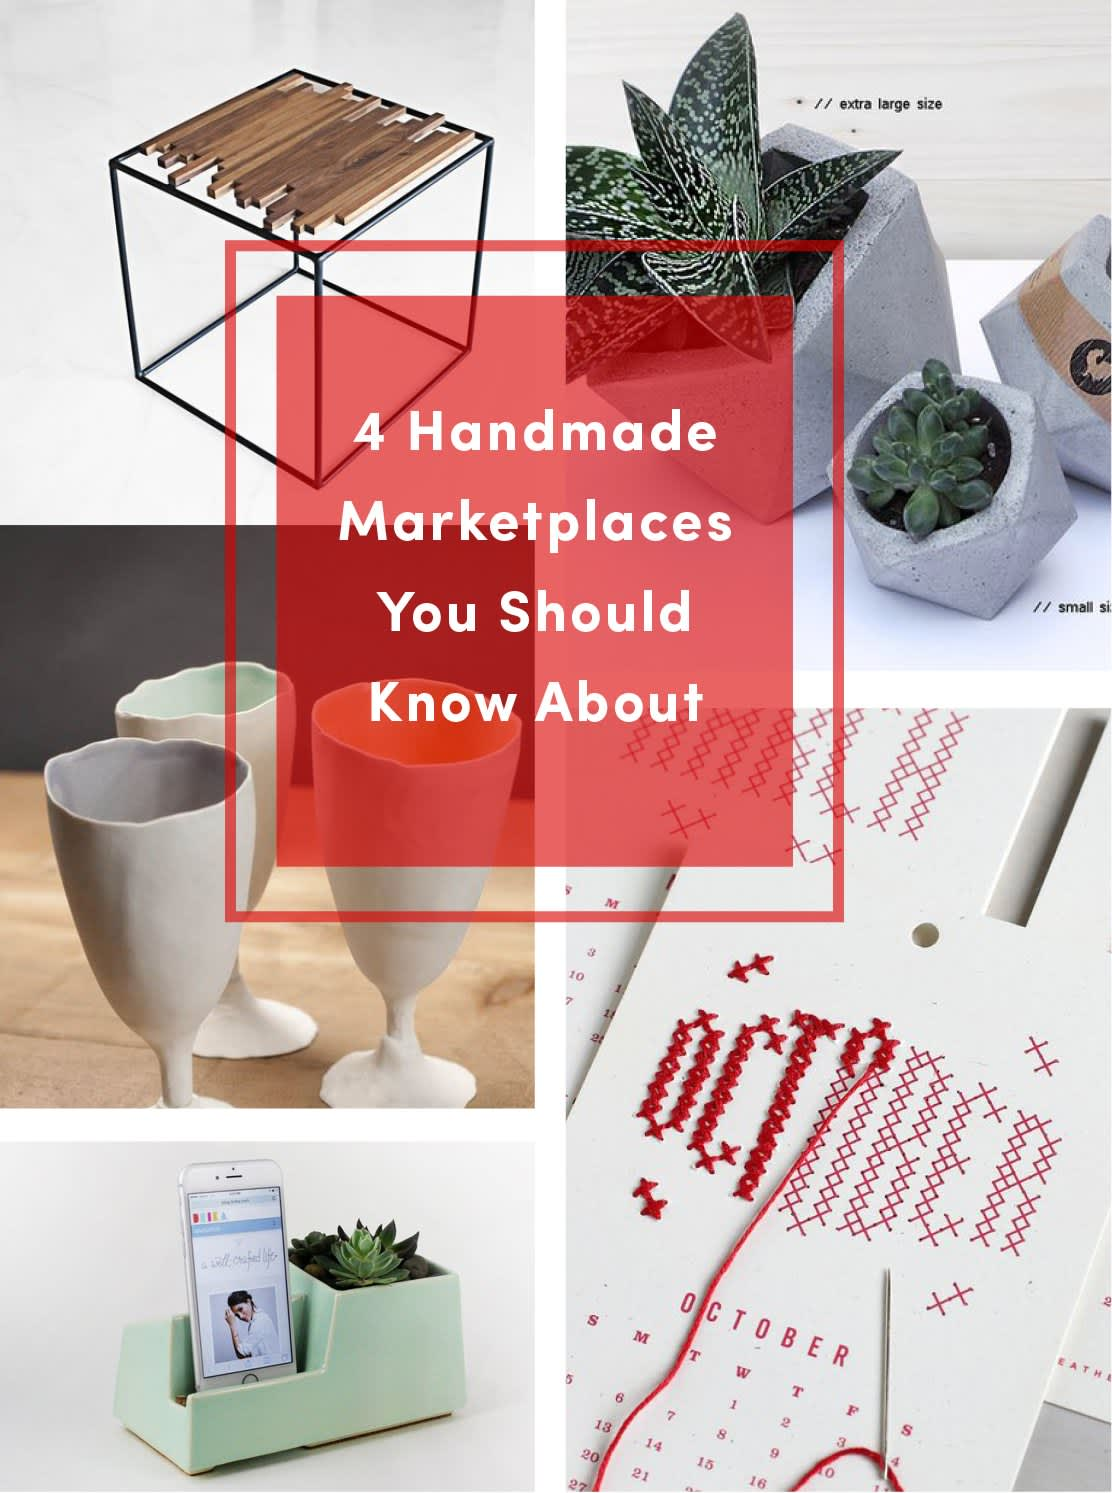 Shopping Guide: 4 Online Handmade Marketplaces Other Than Etsy That You Should Know About